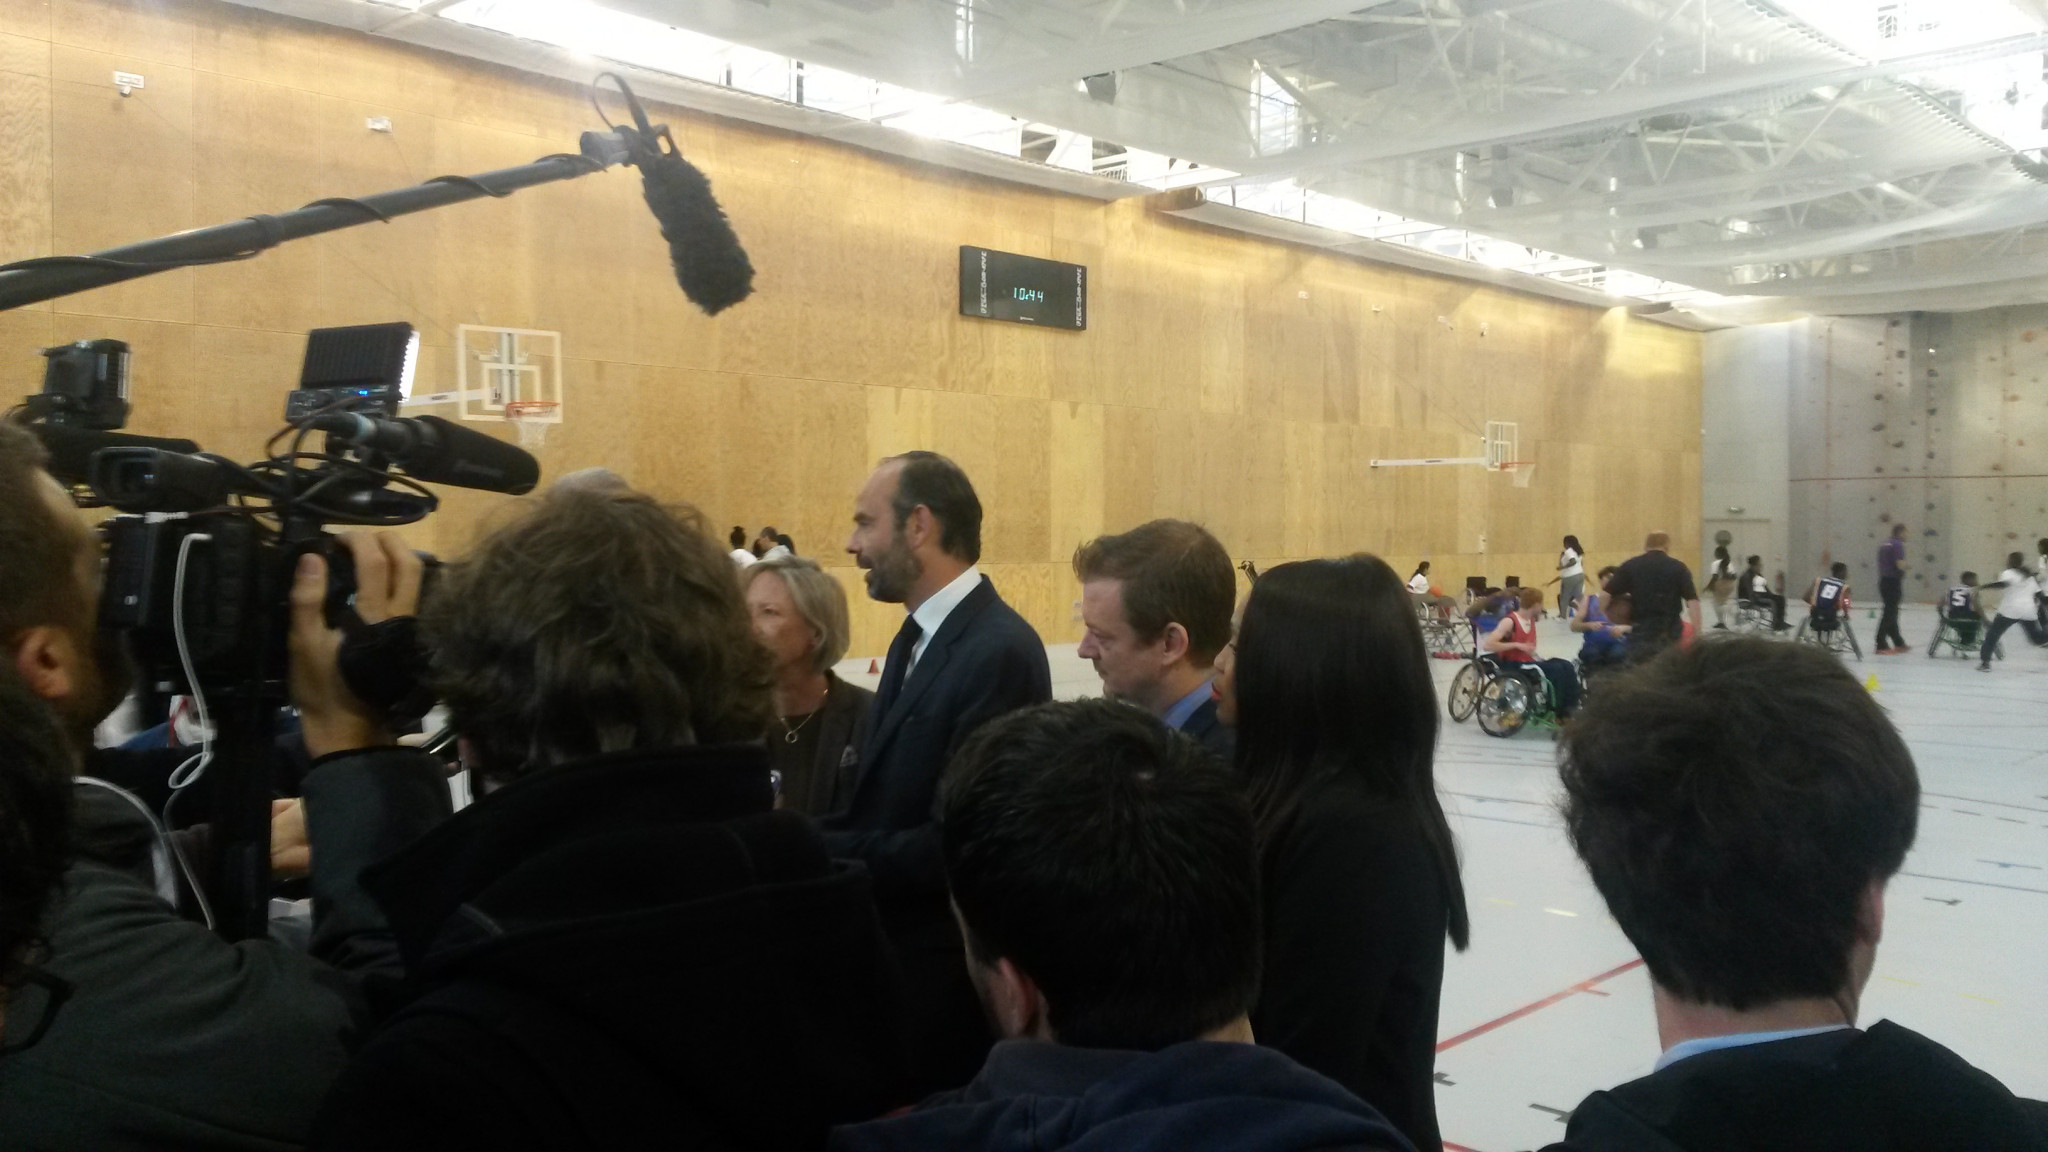 IPC President Andrew Parsons, left, and the French Prime Minister Edouard Philippe at the College Doar Maar this morning ©ITG